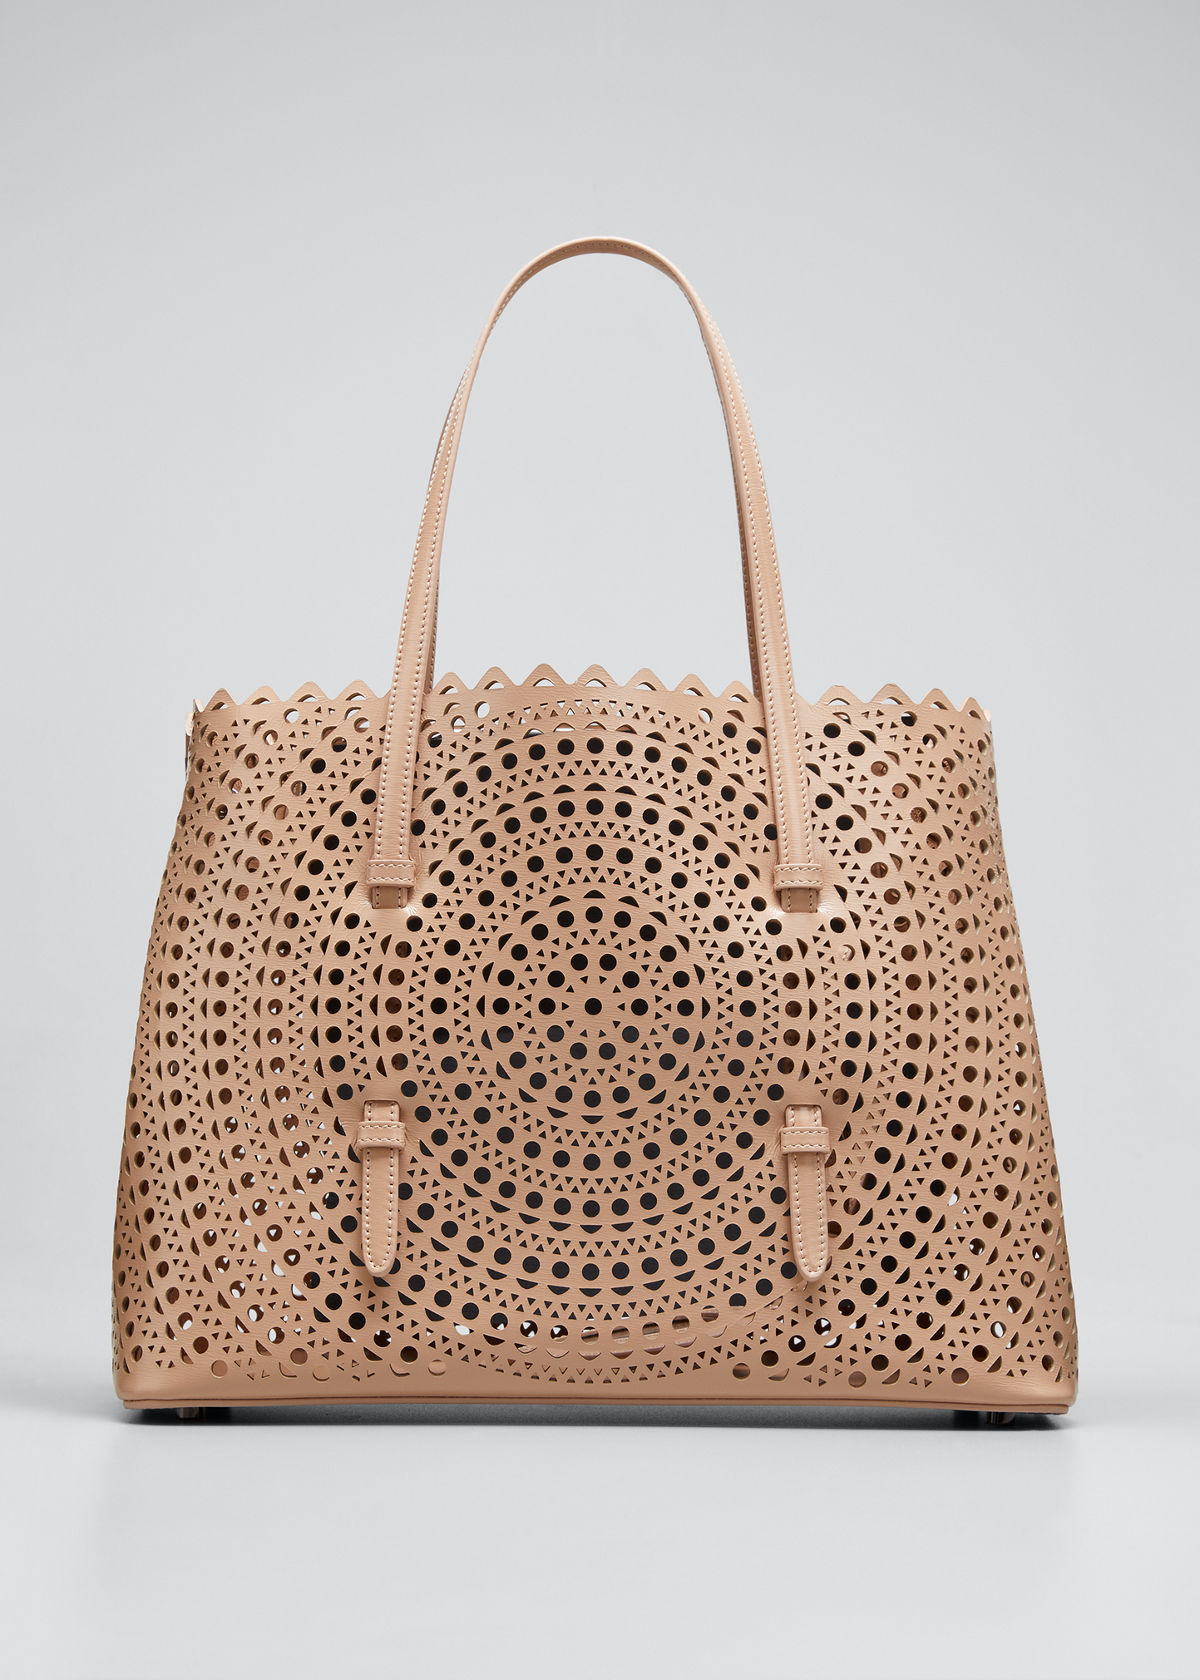 Alaïa MINA MEDIUM LASER-CUT LEATHER TOTE BAG